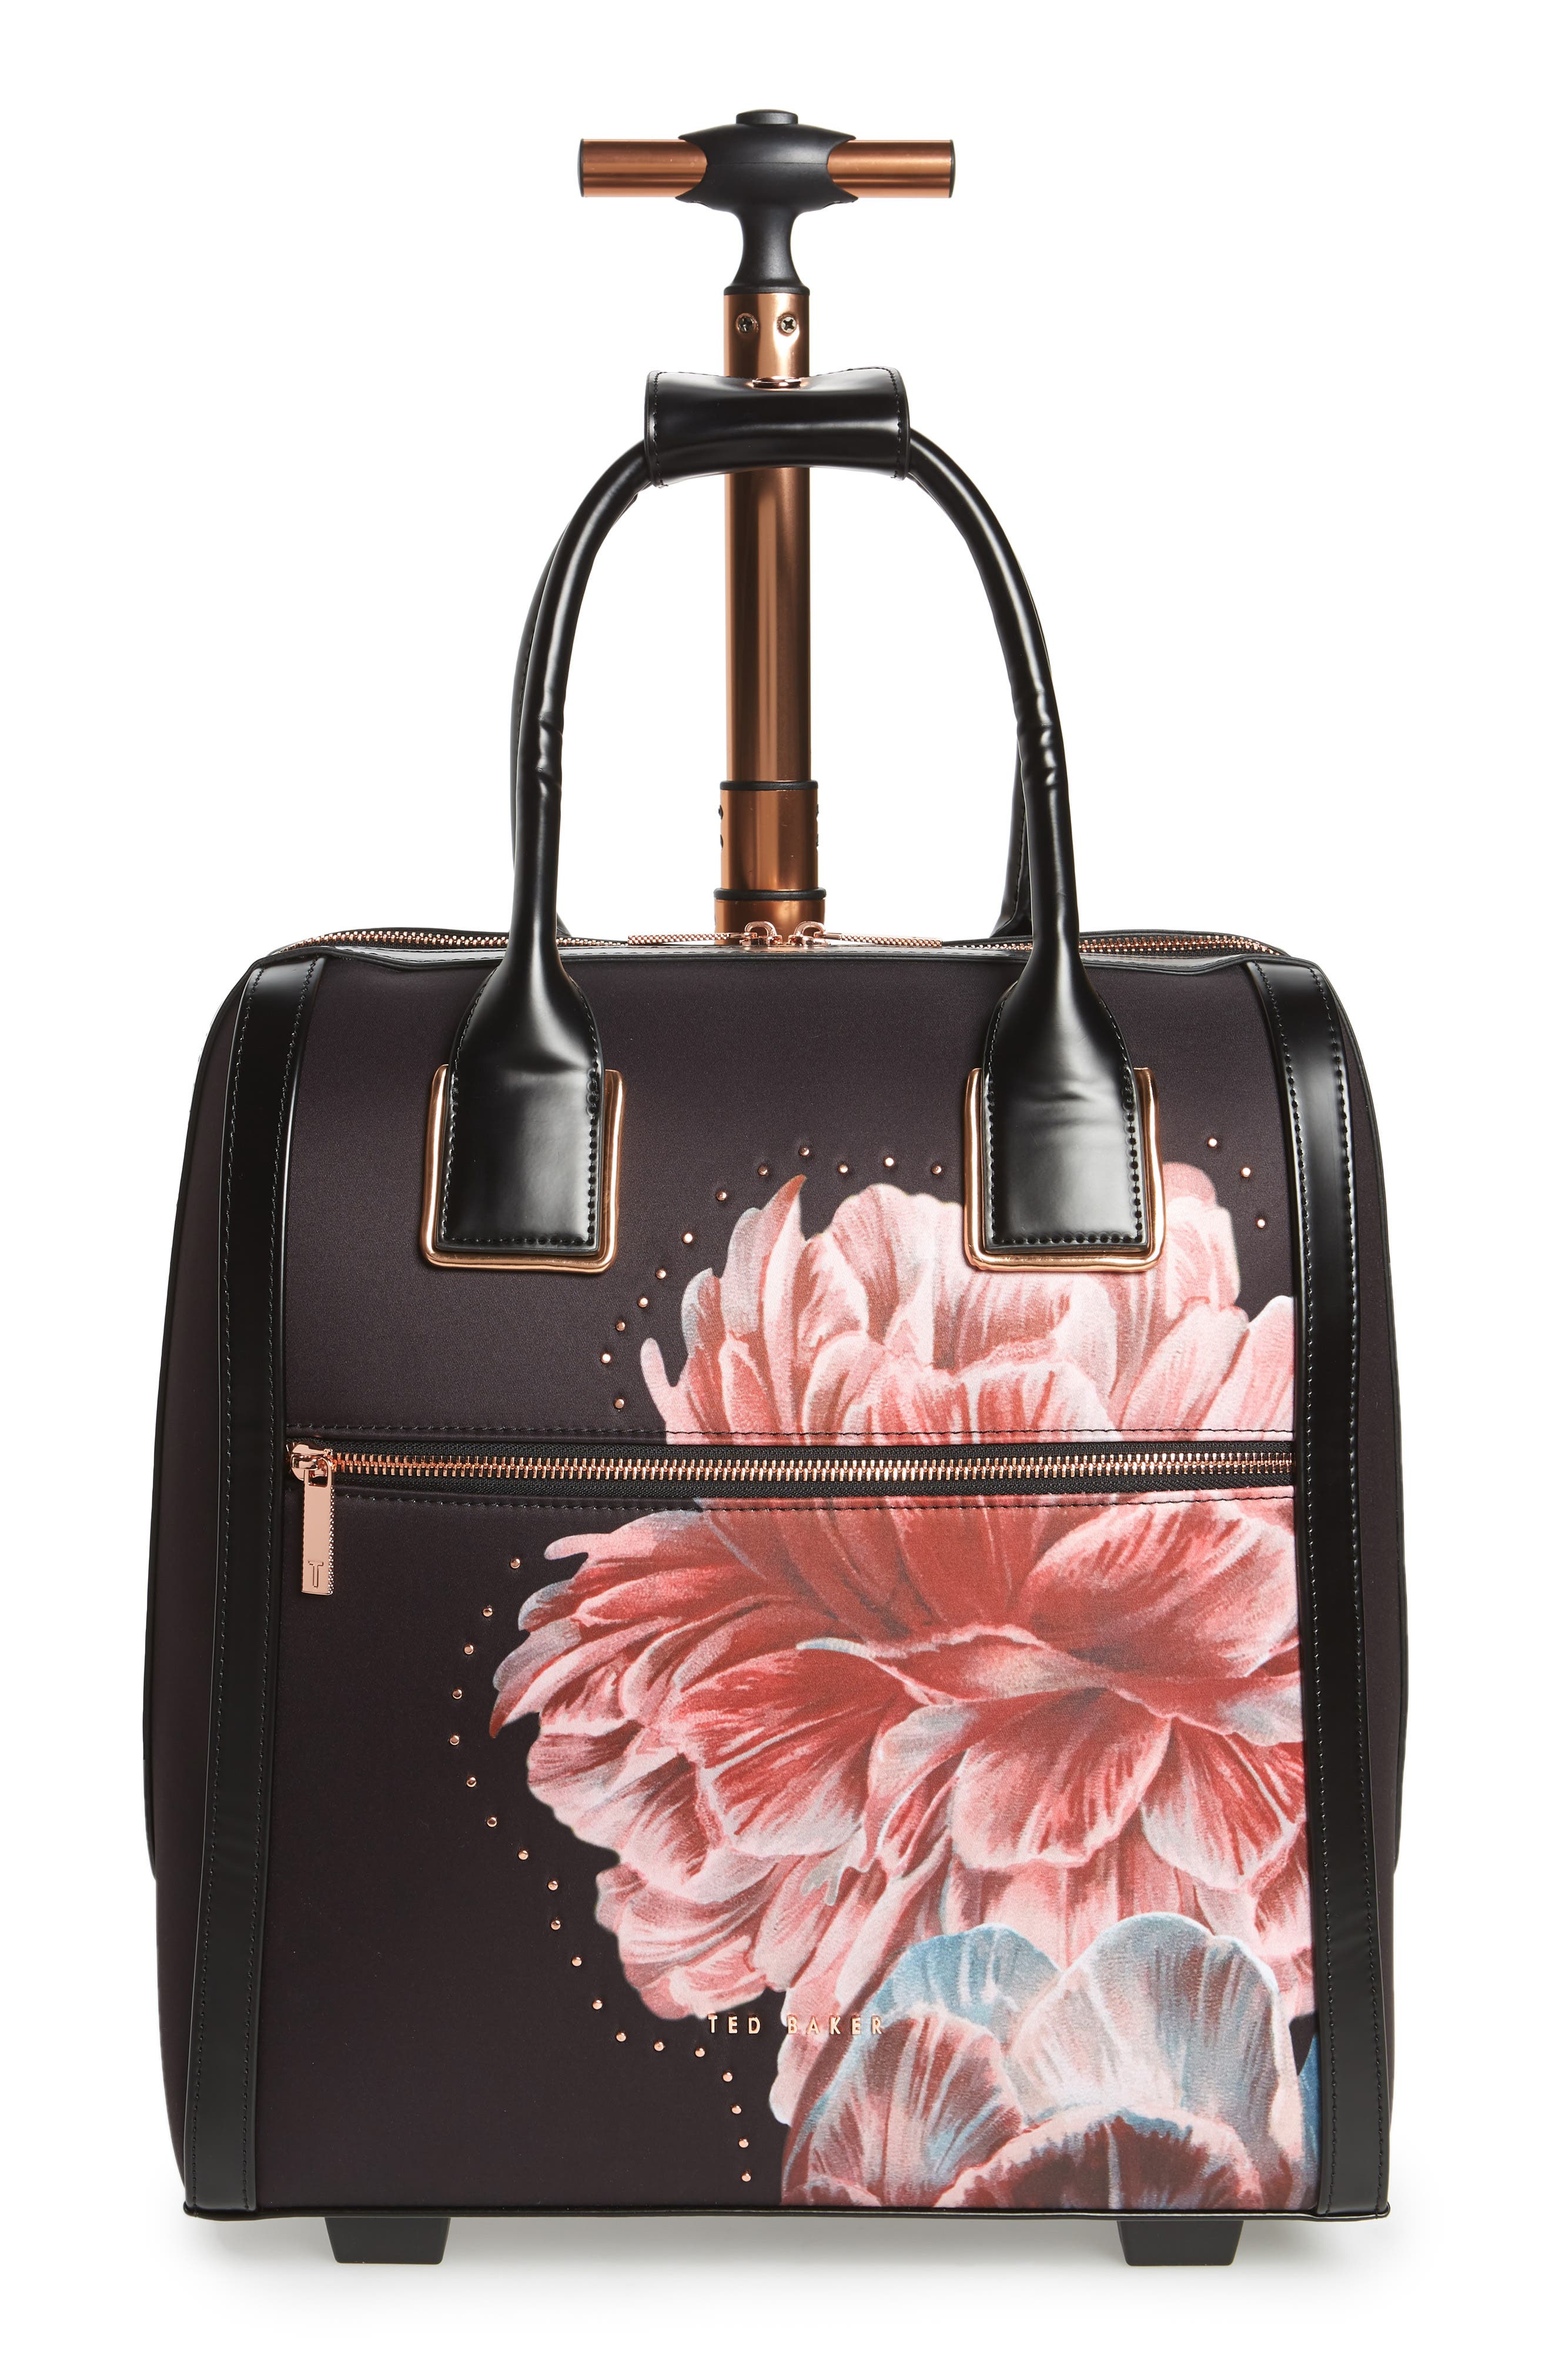 Tranquility Rolling Faux Leather Travel Bag,                             Main thumbnail 1, color,                             Black